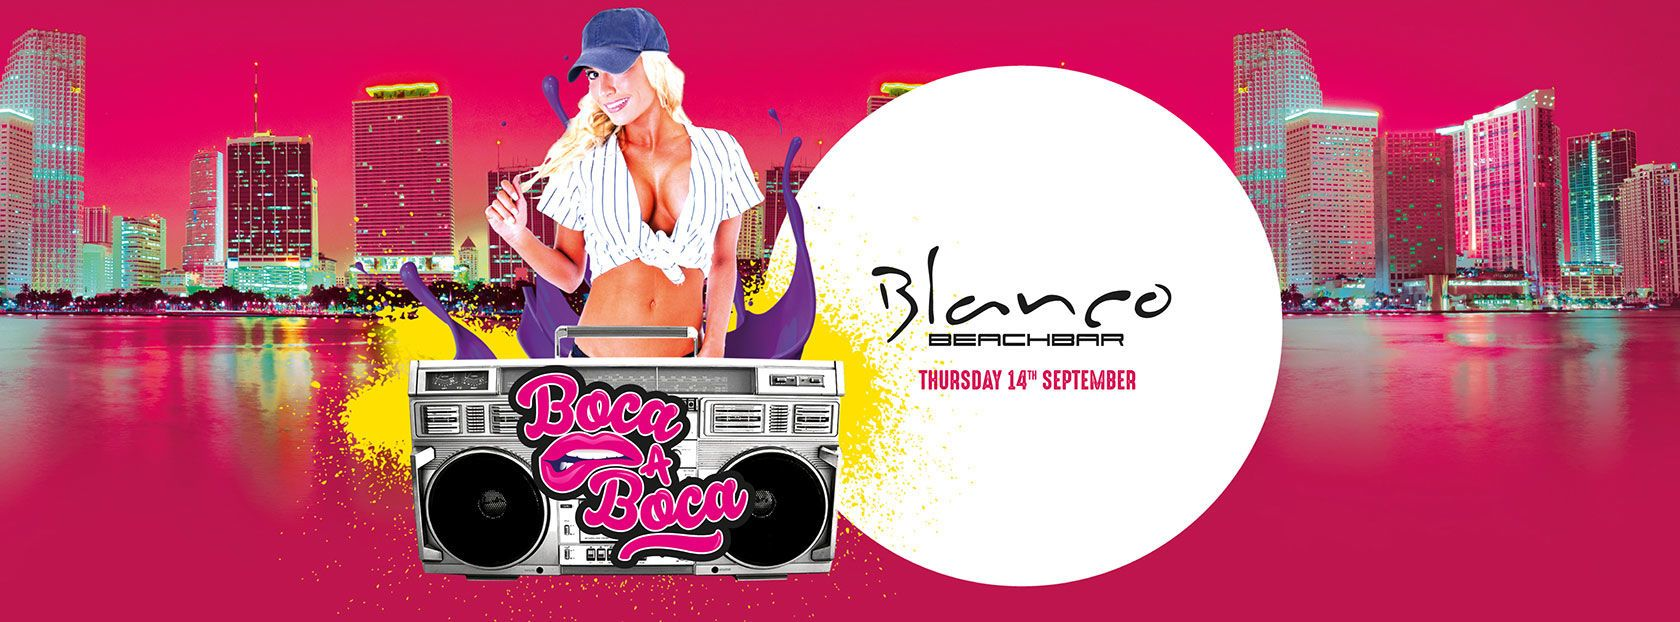 Blanco Beach Bar - Boca a boca